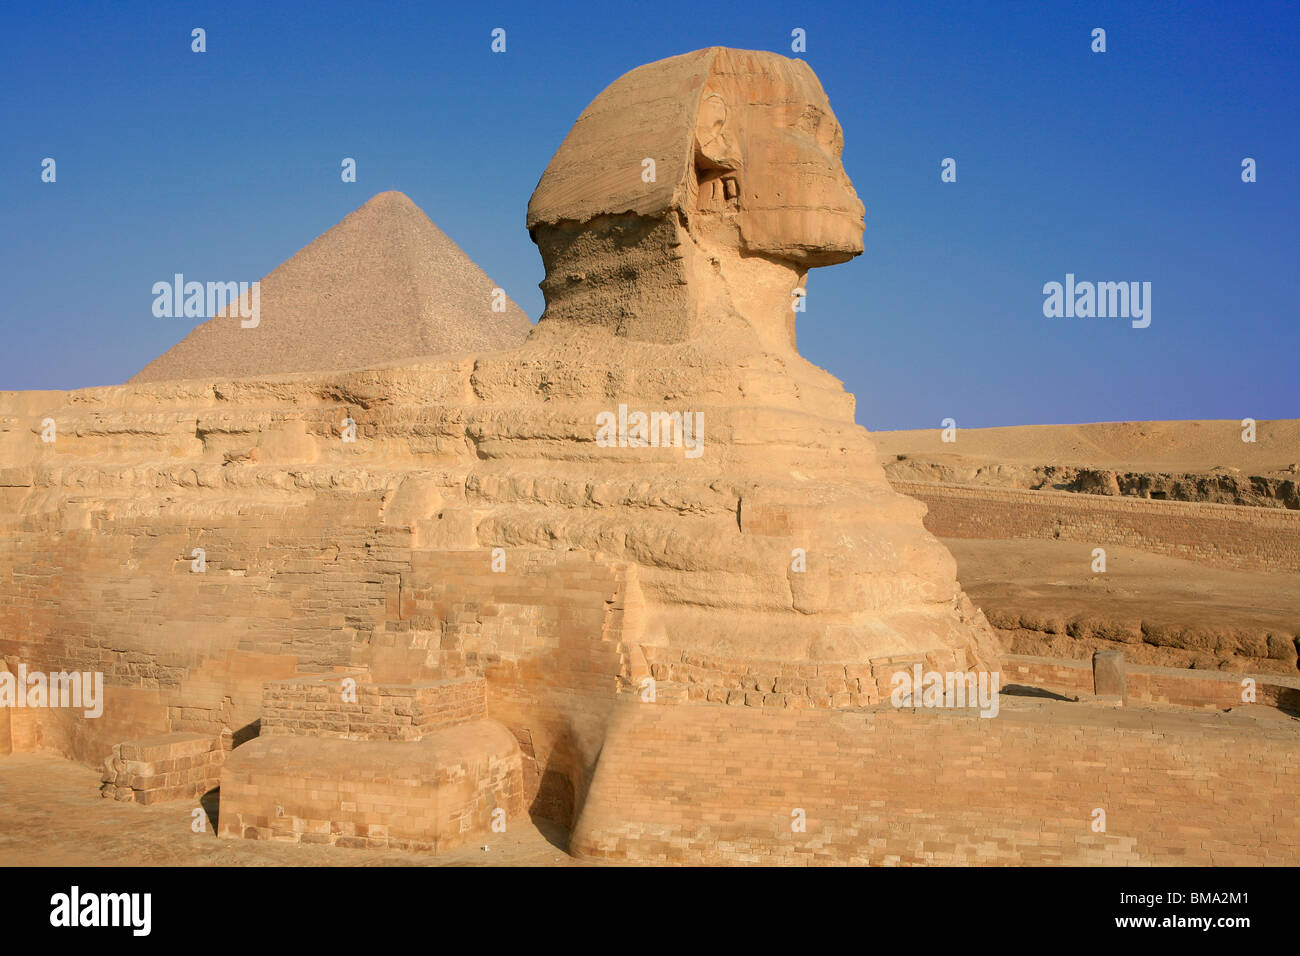 an analysis of the great sphinx of giza The great sphinx is a giant sculpture at the foot of the great pyramids of giza in egypt the sphinx has the sphinx facts: lesson for kids analysis employee.